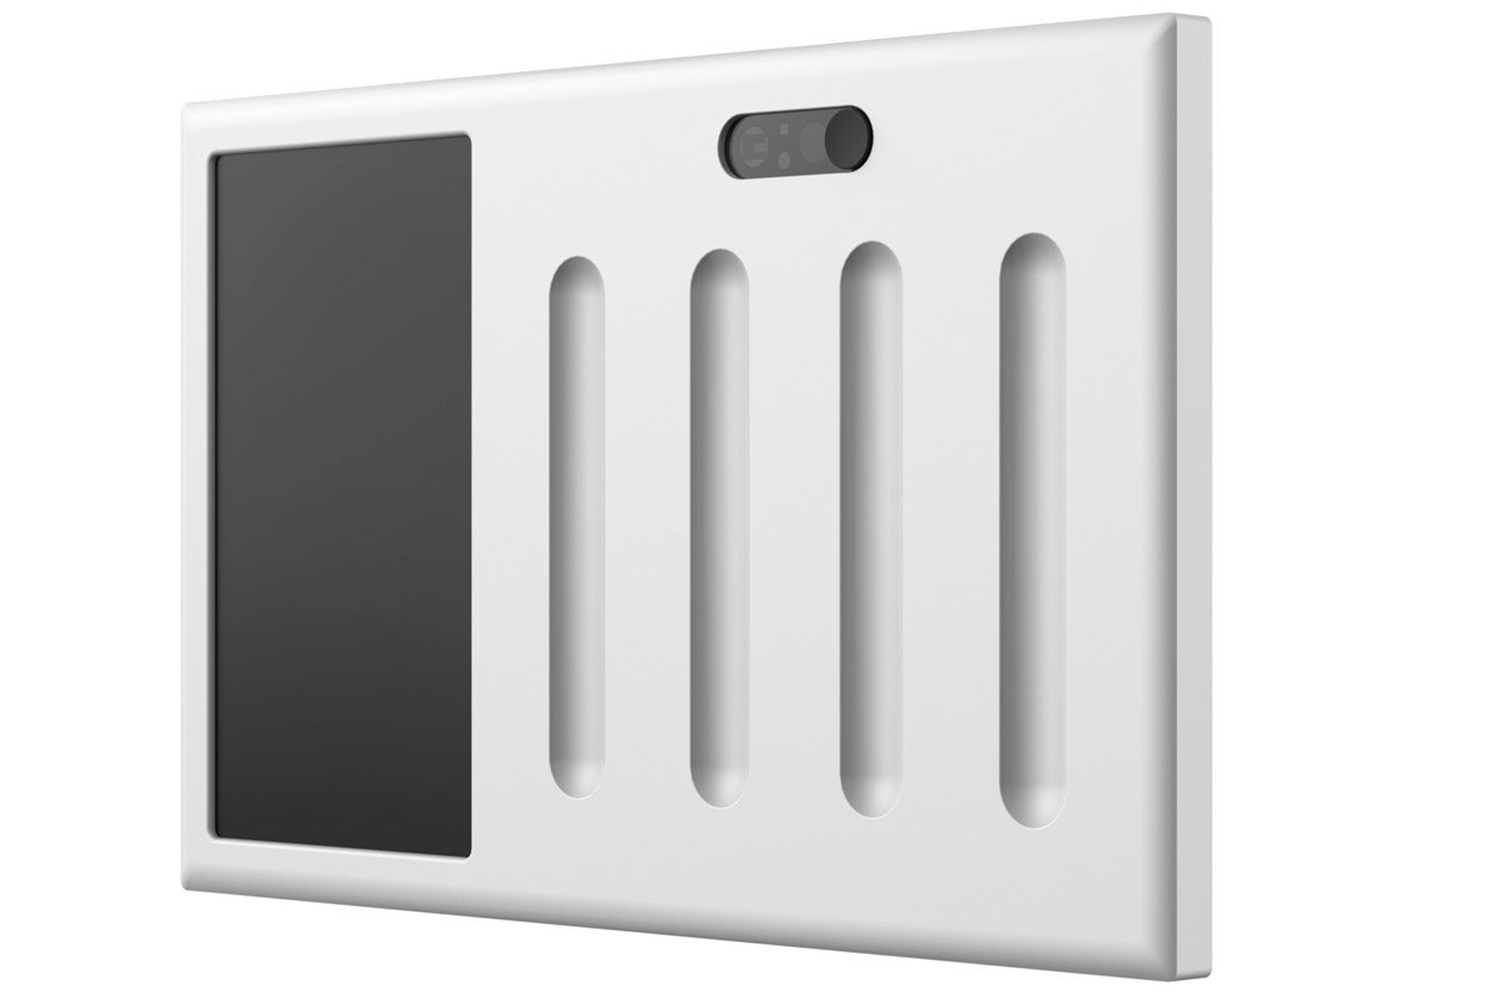 It works with SmartThings or Wink hubs, and is compatible with light switch panels with one to four switches.